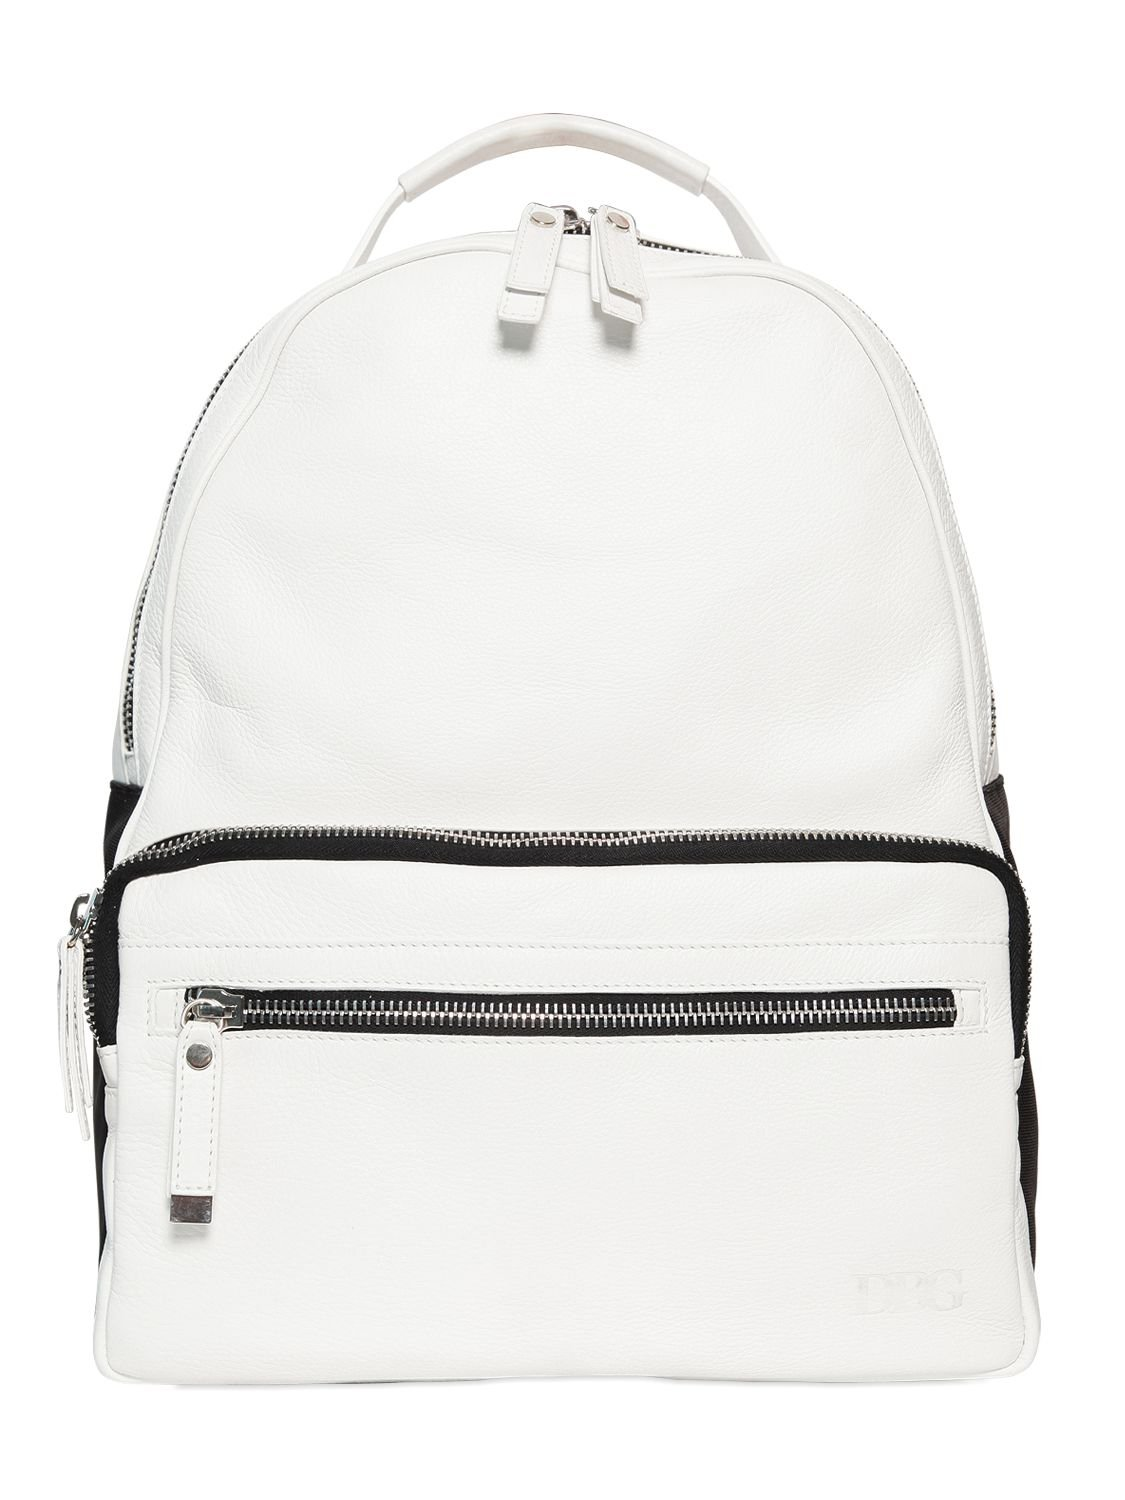 0492e846d80d Black And White Backpack Leather - BD Fabrications